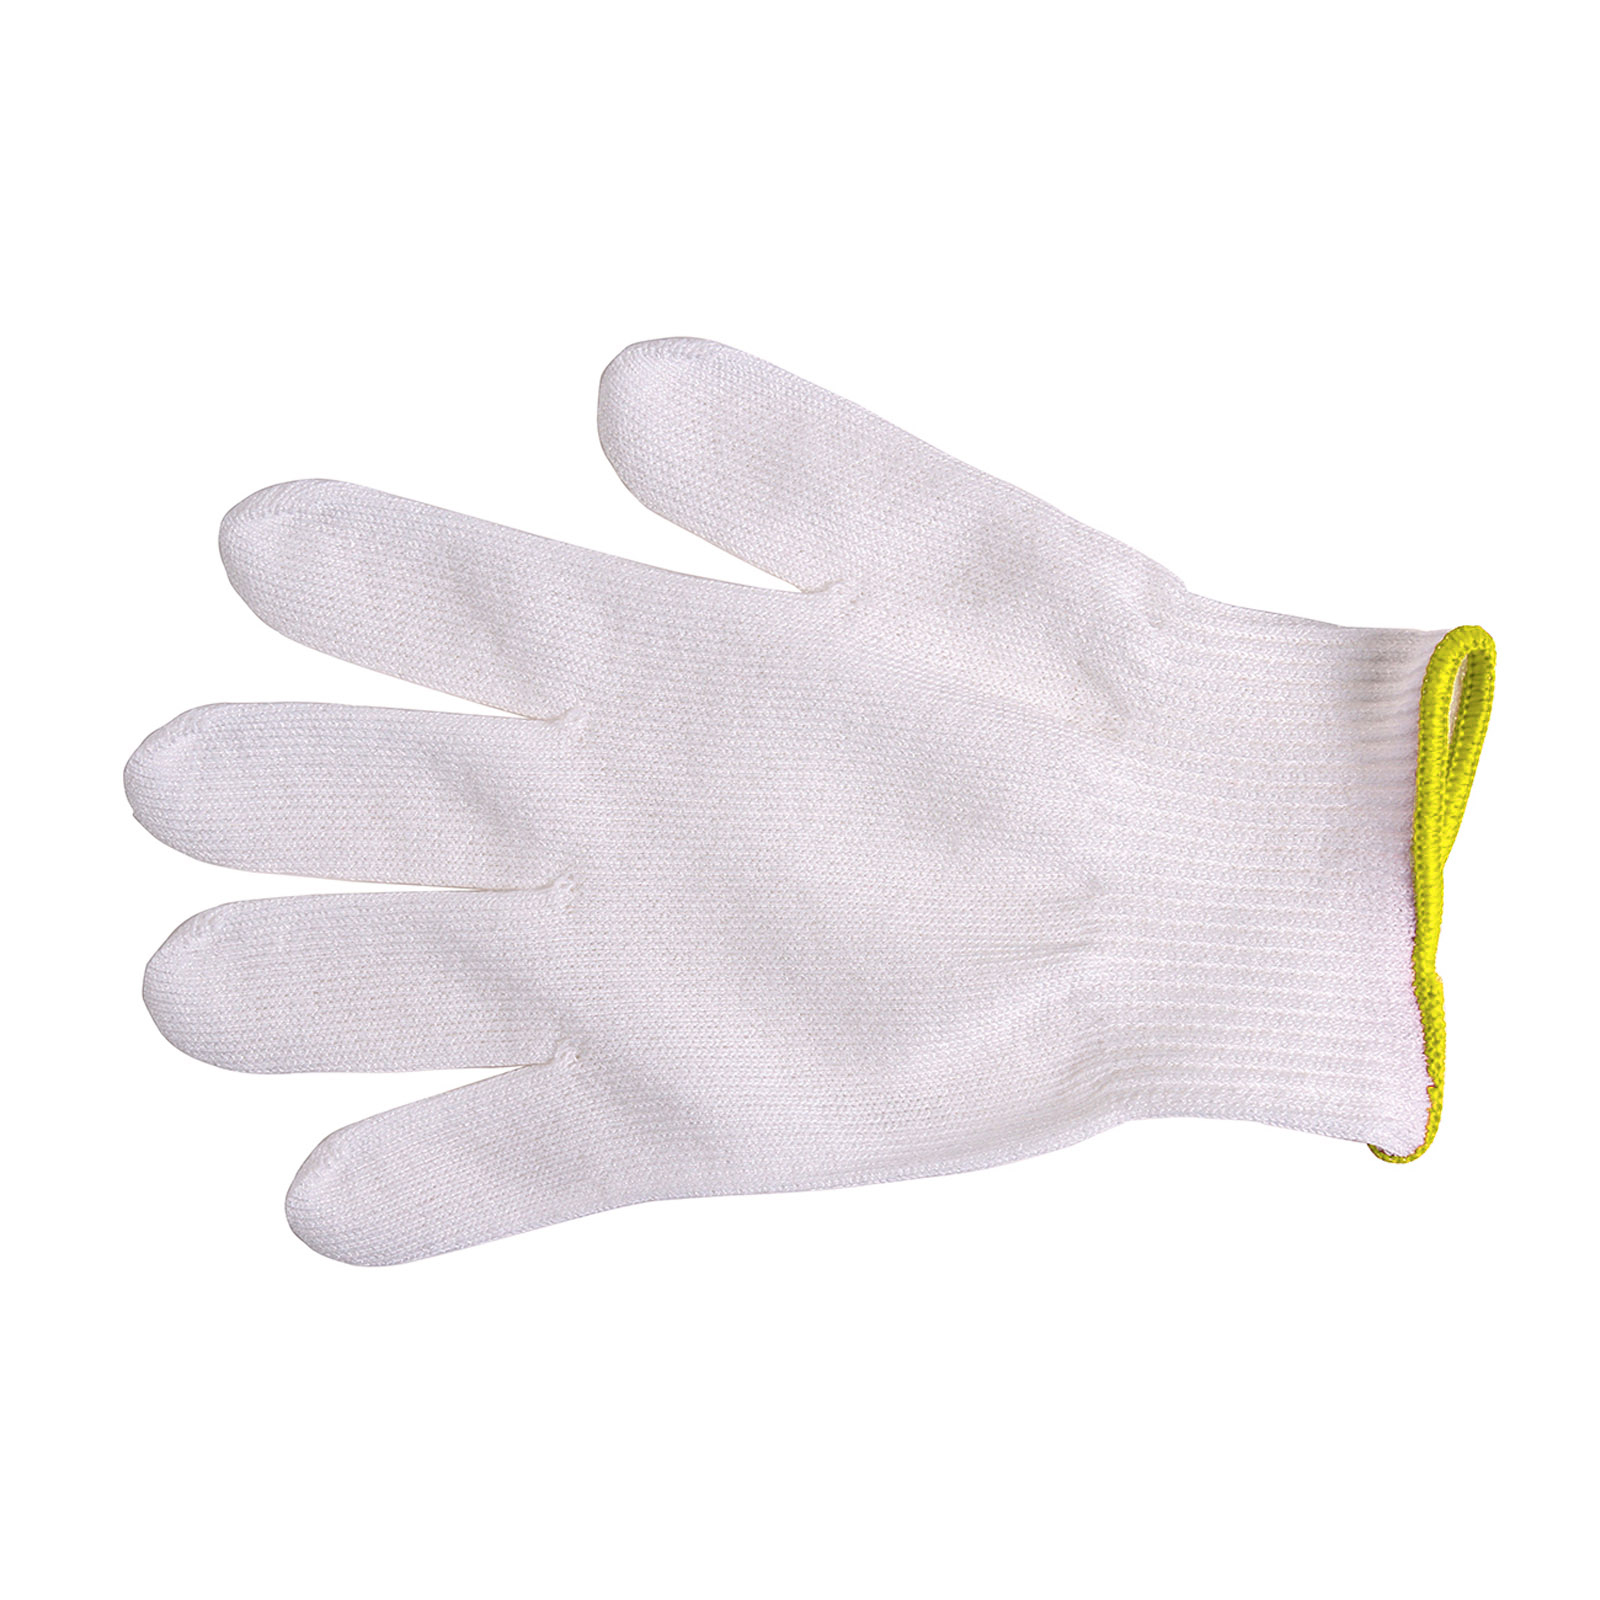 Mercer Culinary M33411XS glove, cut resistant